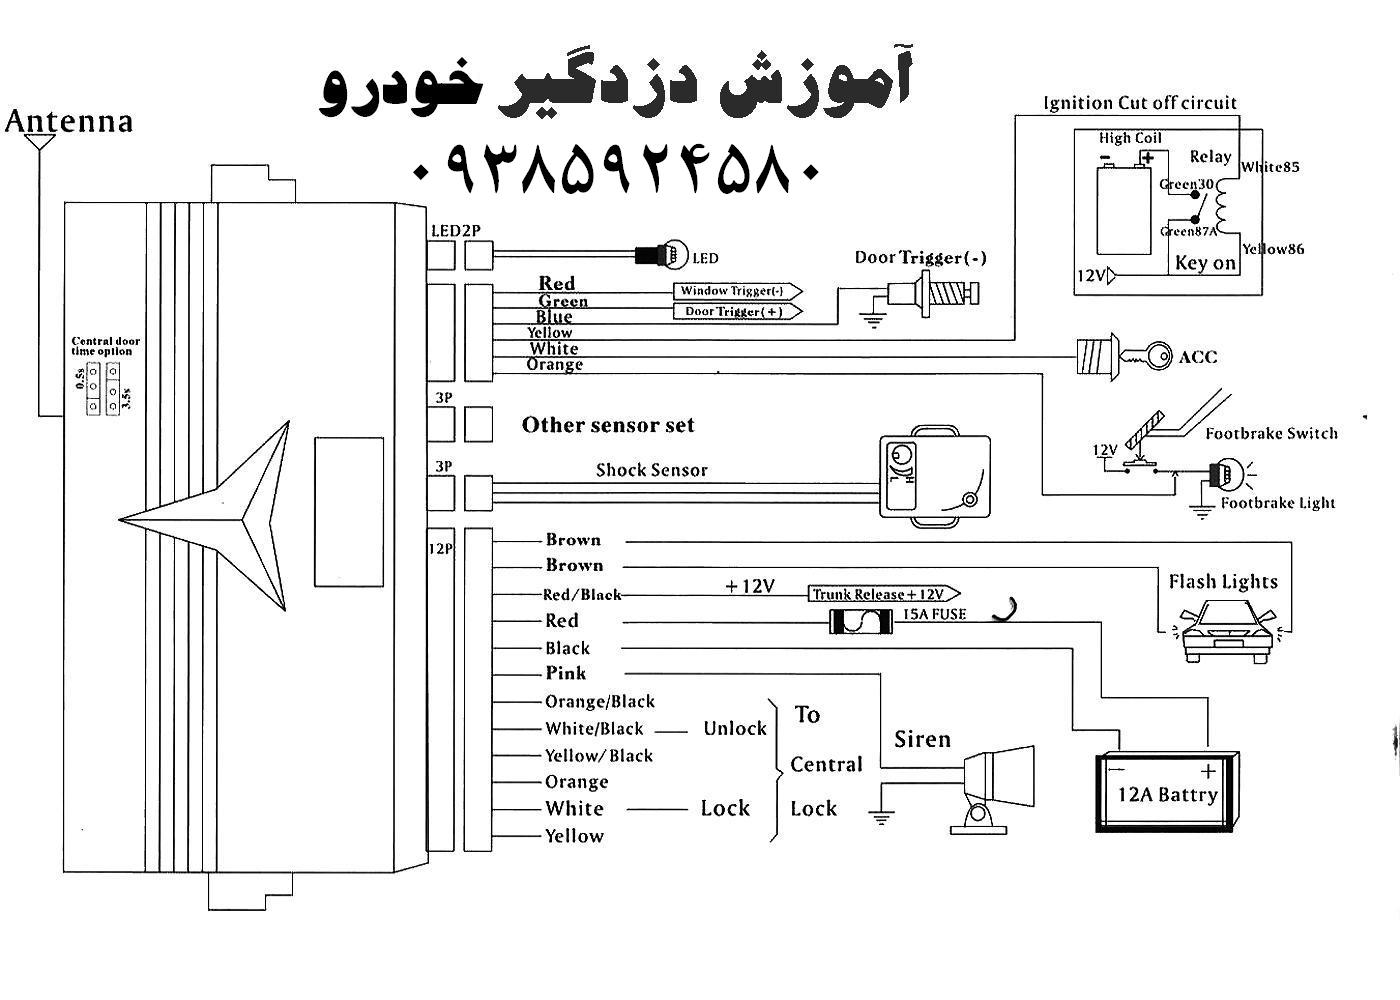 car alarm map (10) wiring diagram for viper car alarm efcaviation com viper 5000 wiring diagram at bakdesigns.co